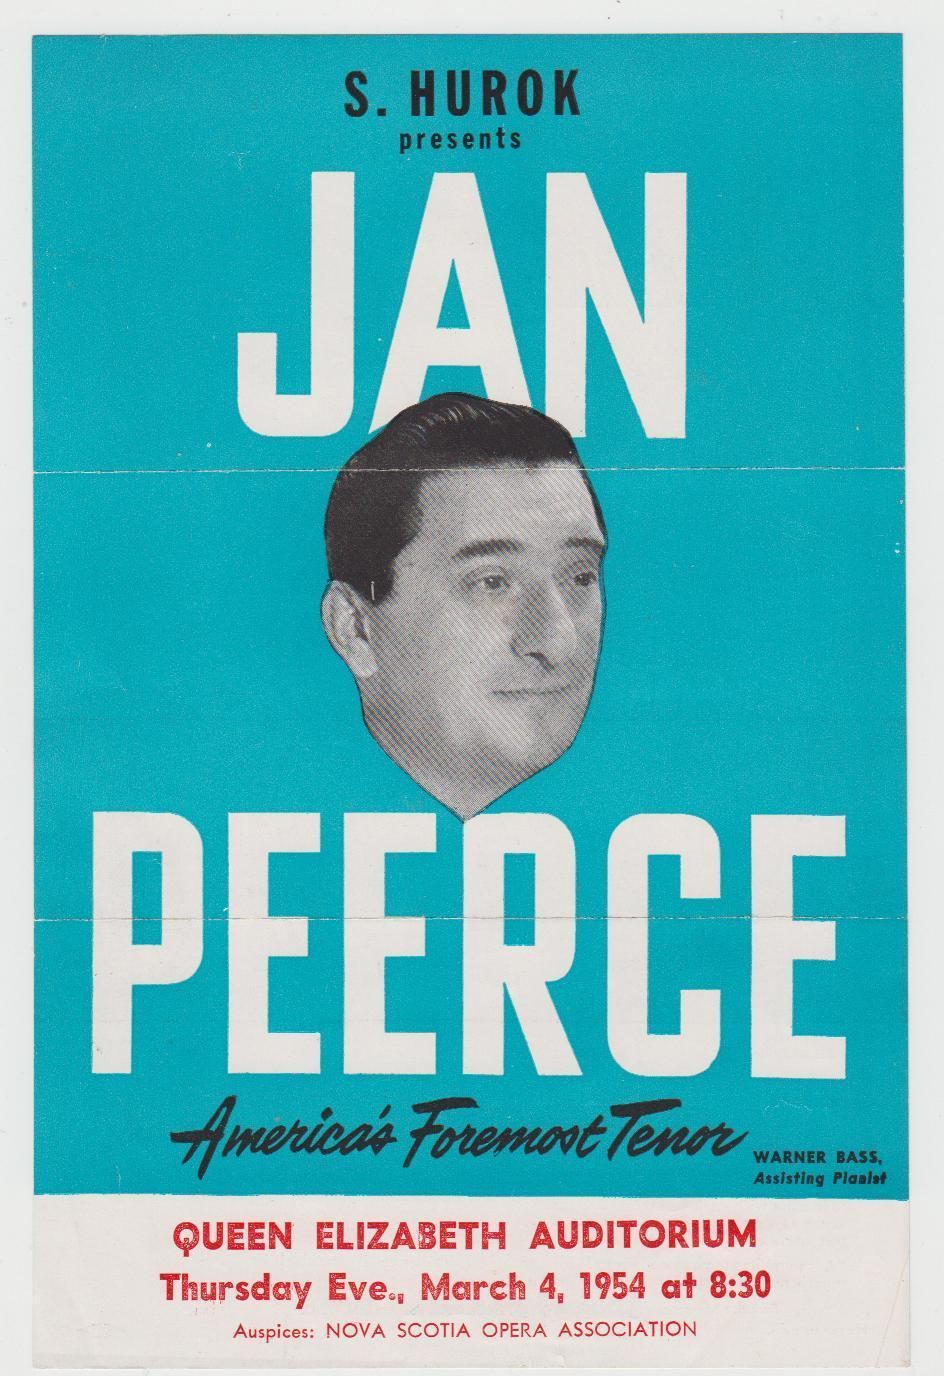 Image for Original 1954 JAN PEERCE Handbill & Program Nova Scotia Opera